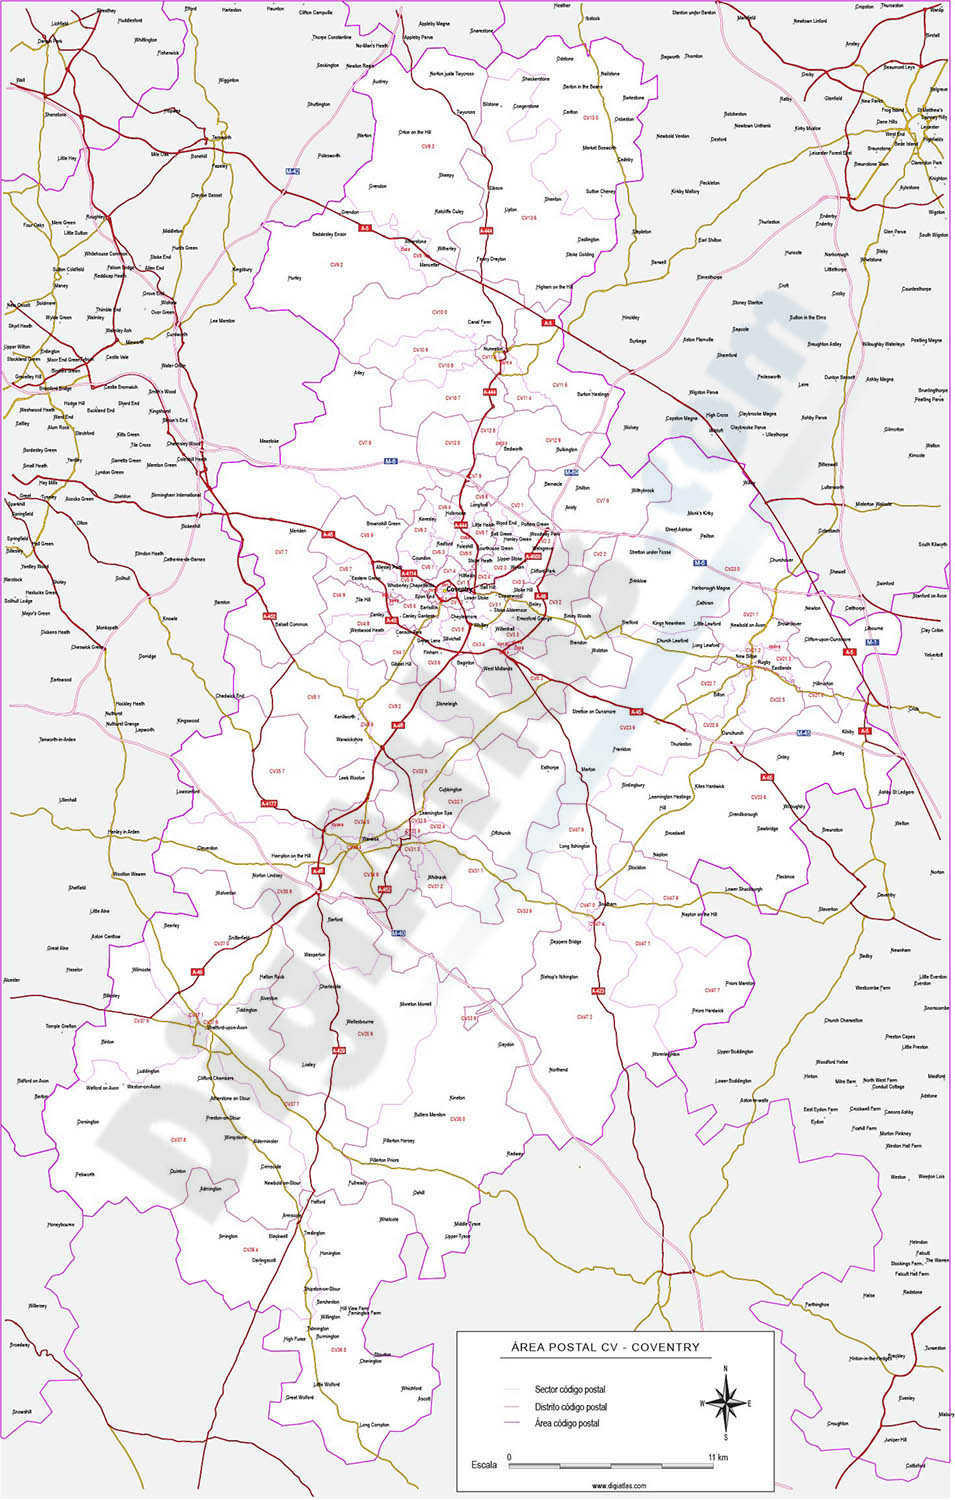 Coventry - map of postcode area (CV) with cities and major roads